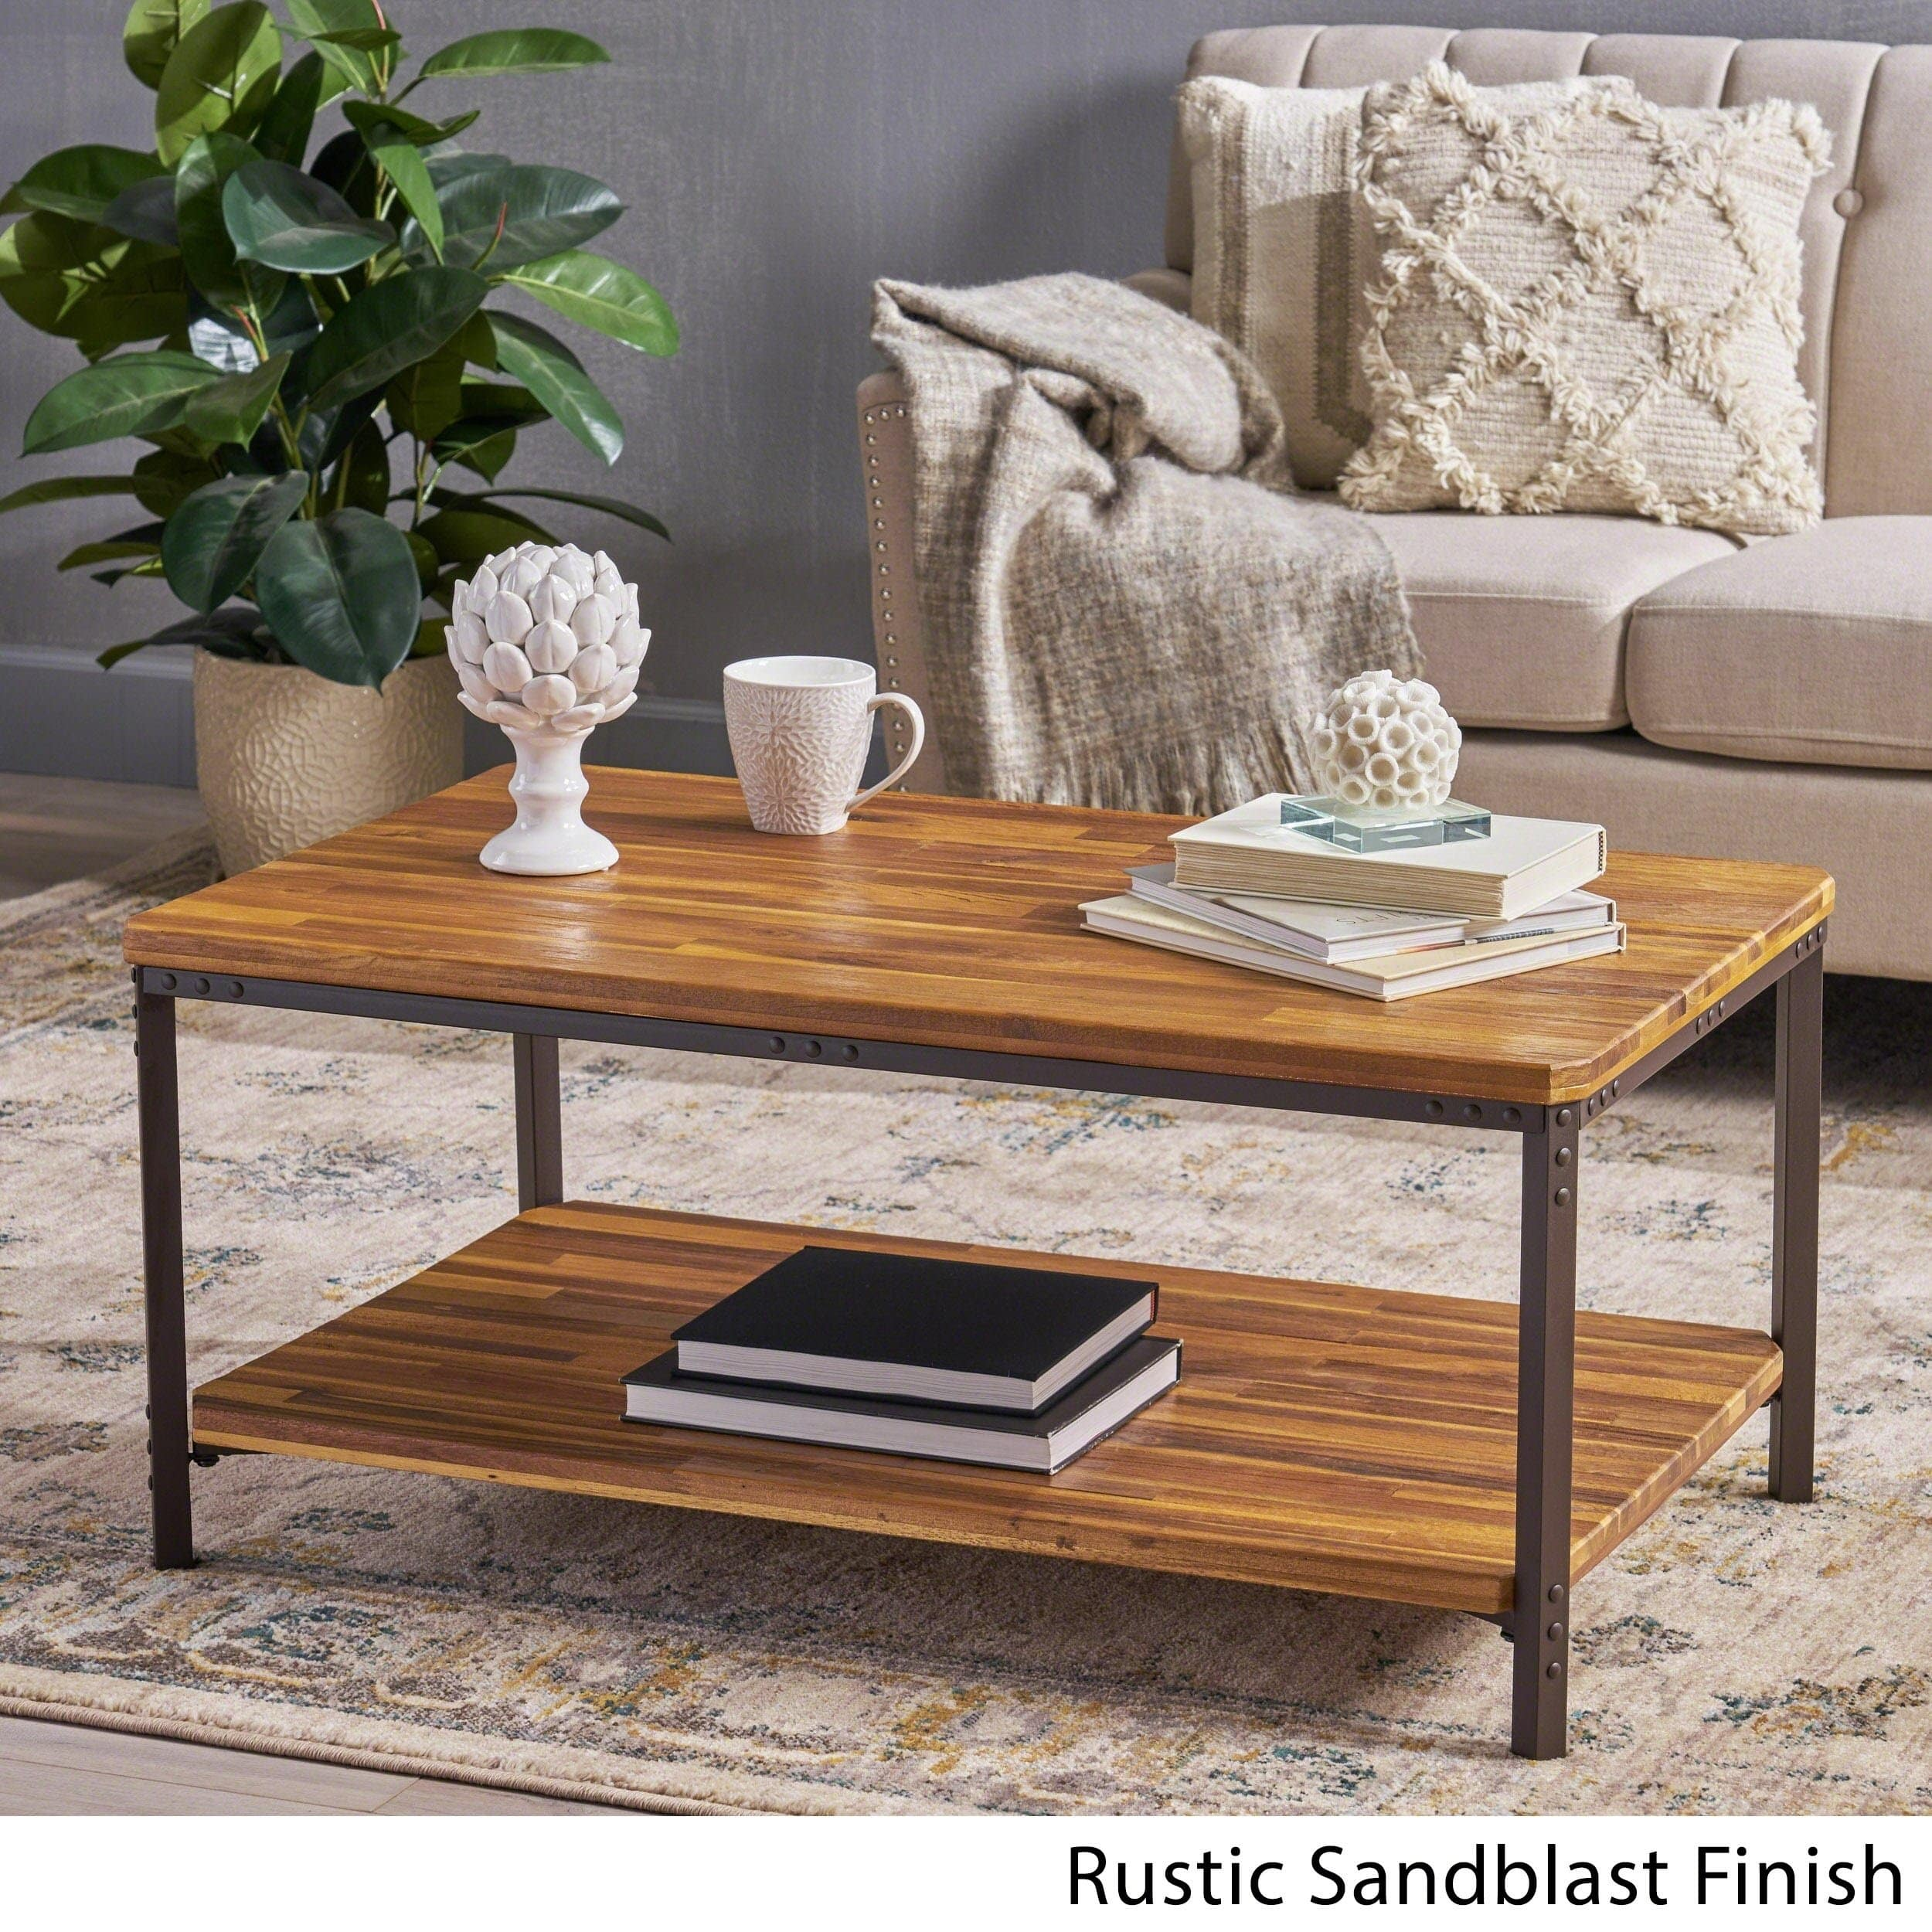 ryder sandblast wood finish accent coffee table christopher knight home small free shipping today smoked glass blue console cabinet shallow short bedside white and gold chair